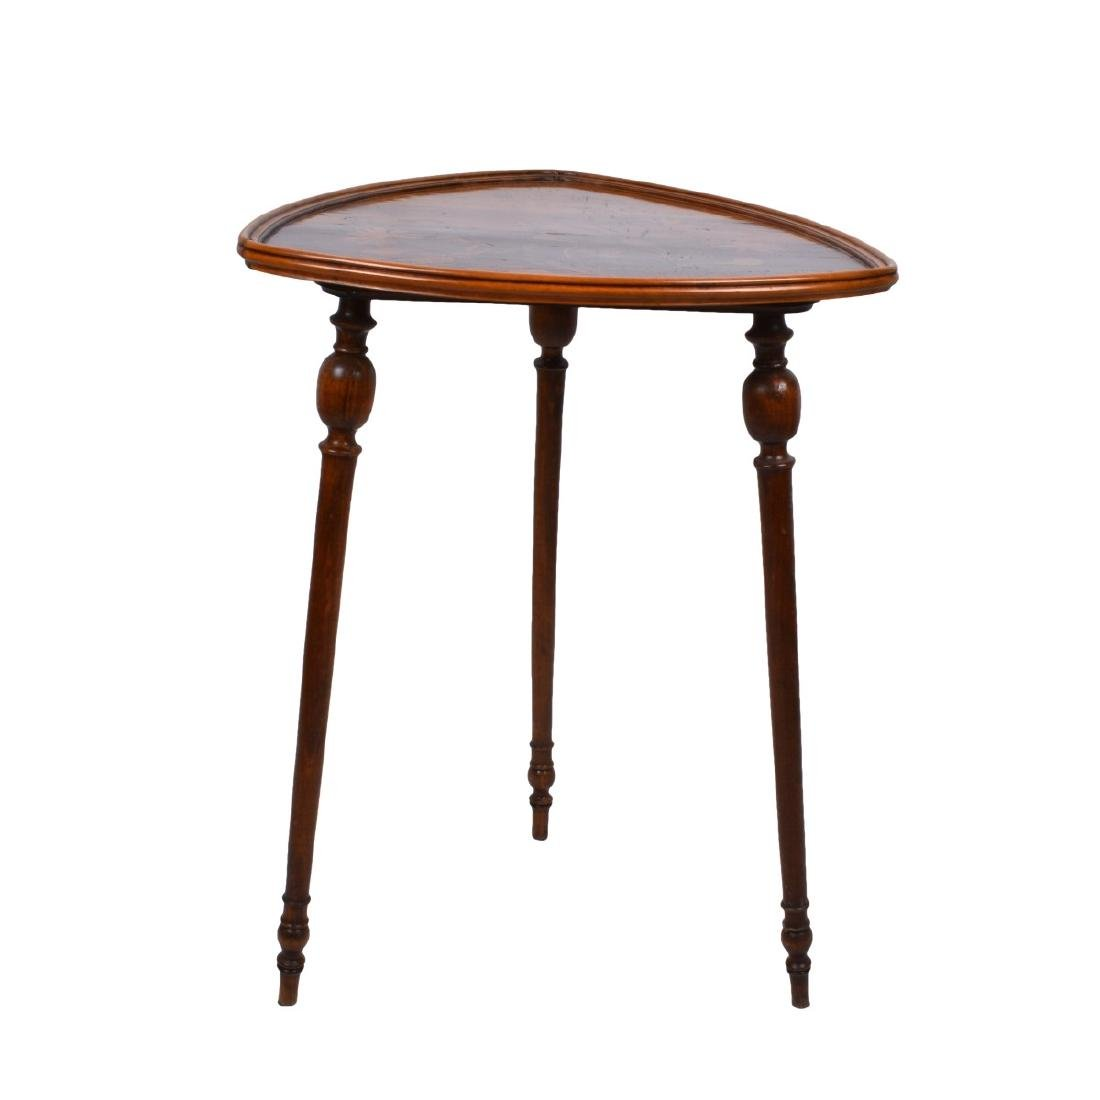 Emile Galle Marquetry Inlaid Side Table